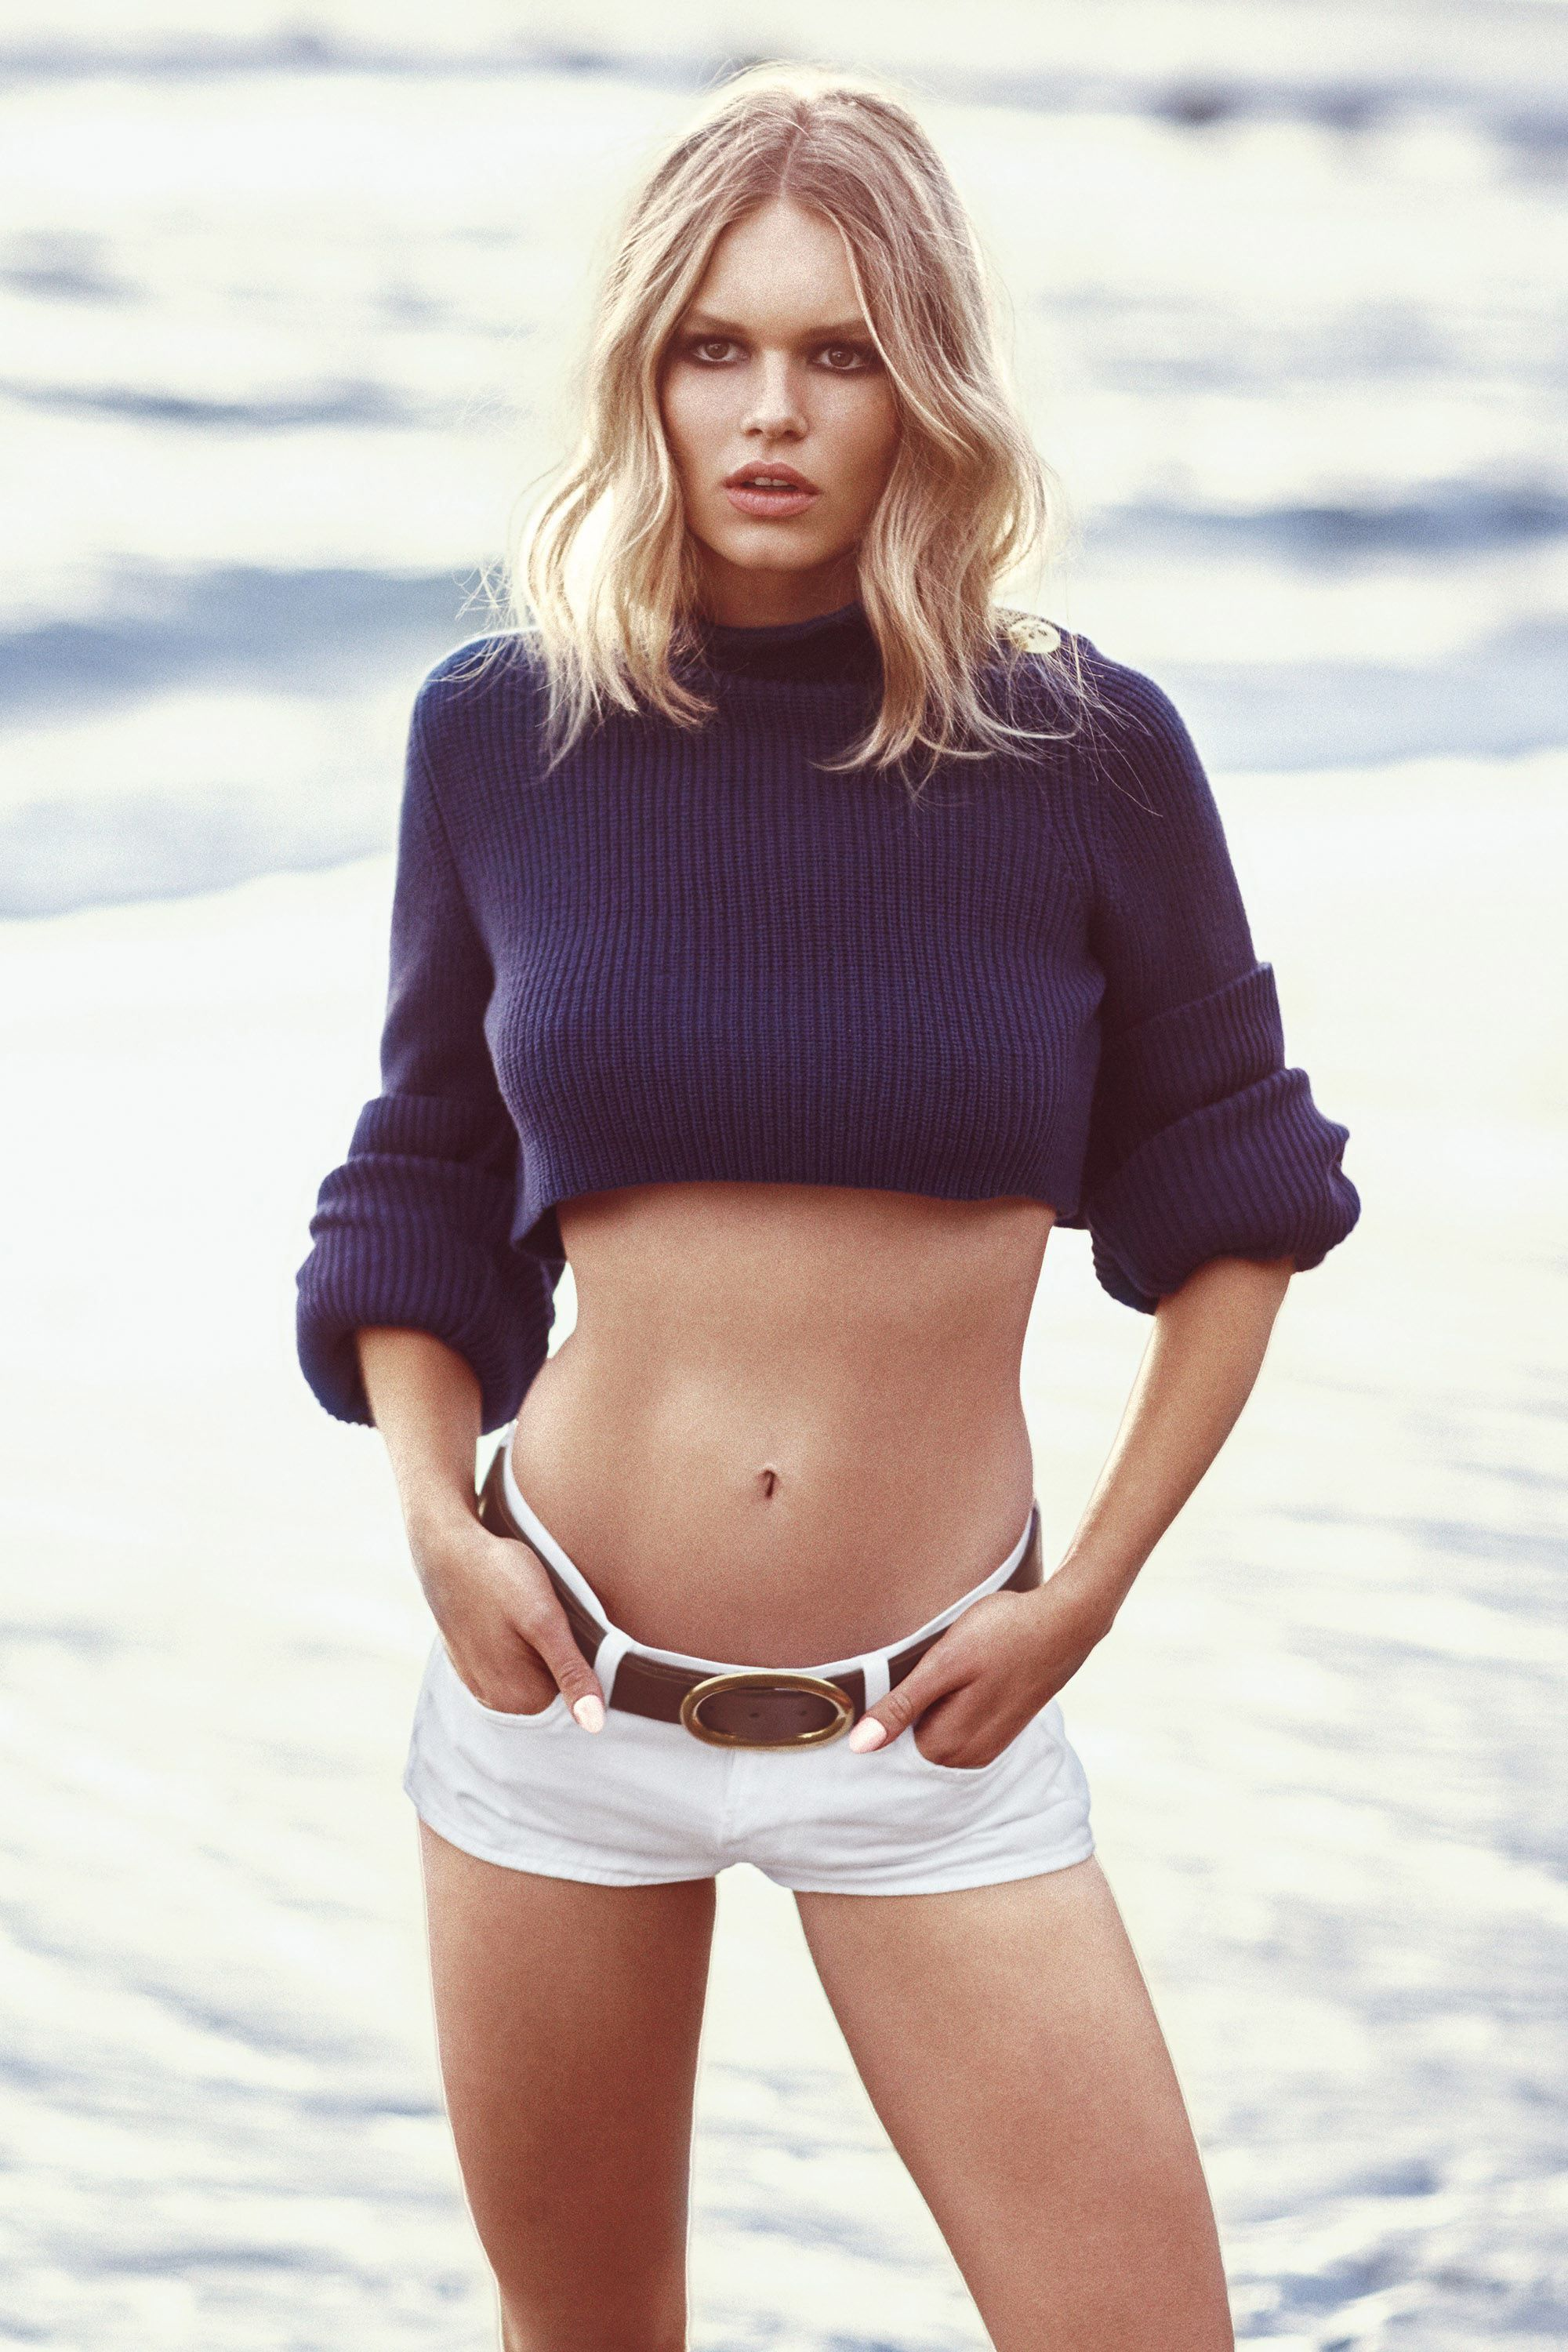 Anna Ewers Top Modeling By The Sea — Celeb Lives